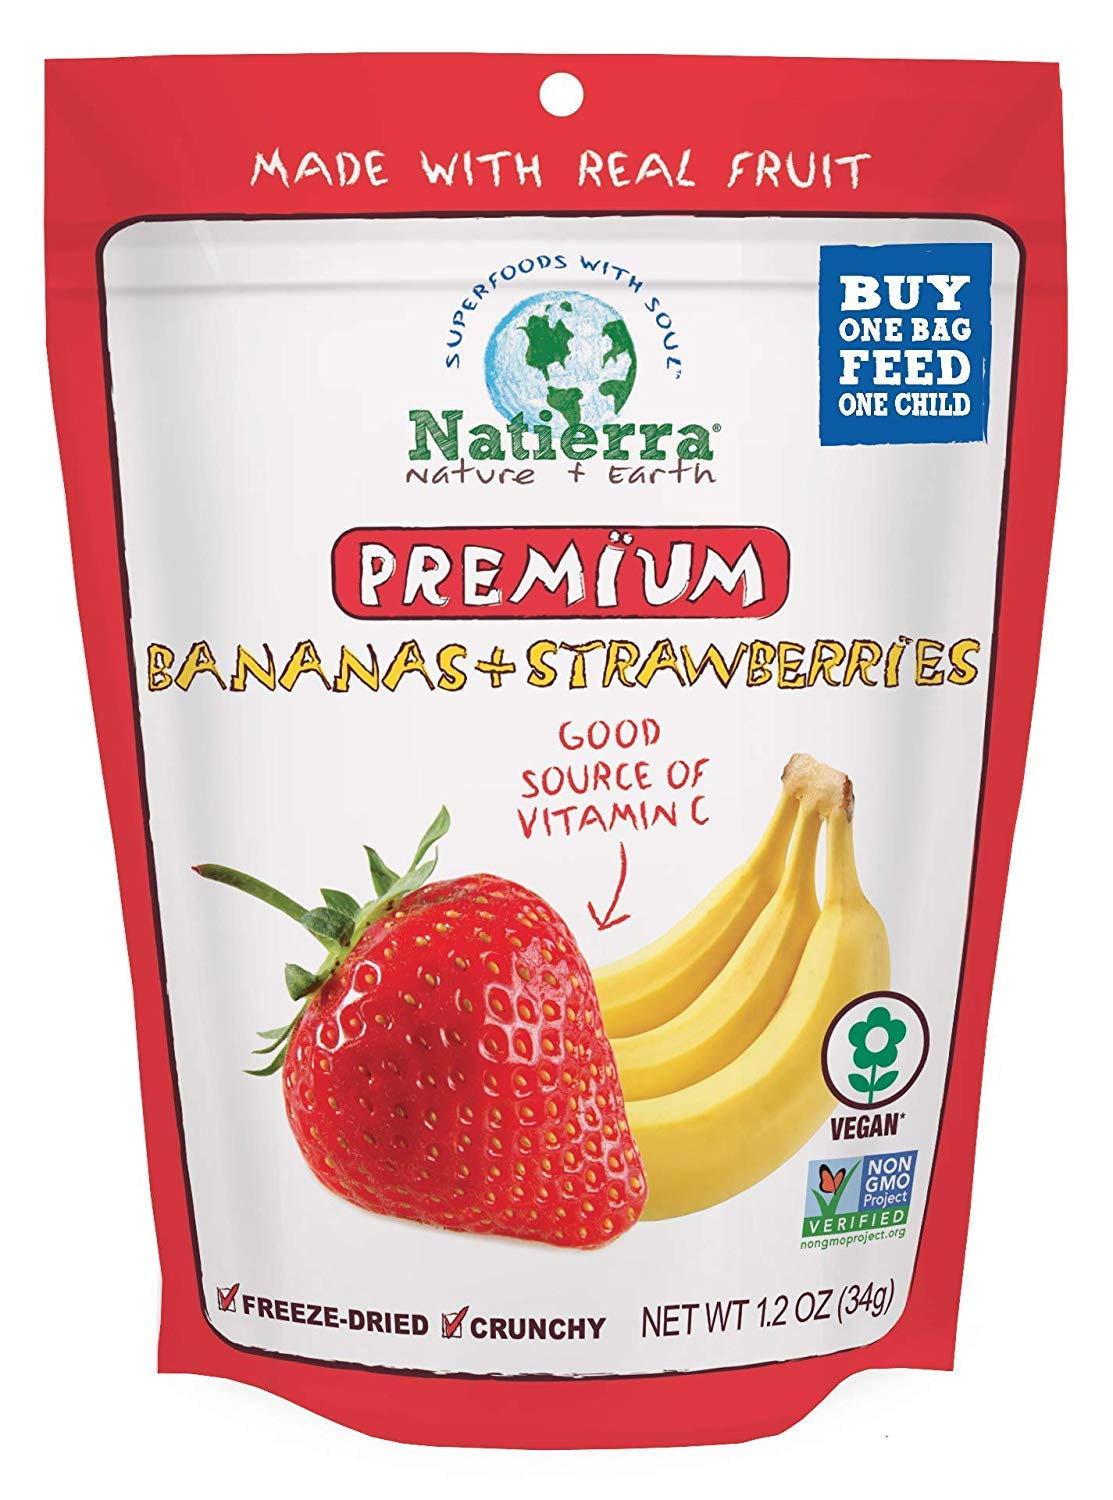 NATIERRA Premium Freeze-Dried Bananas and Max 44% OFF Non-GMO Today's only Strawberries